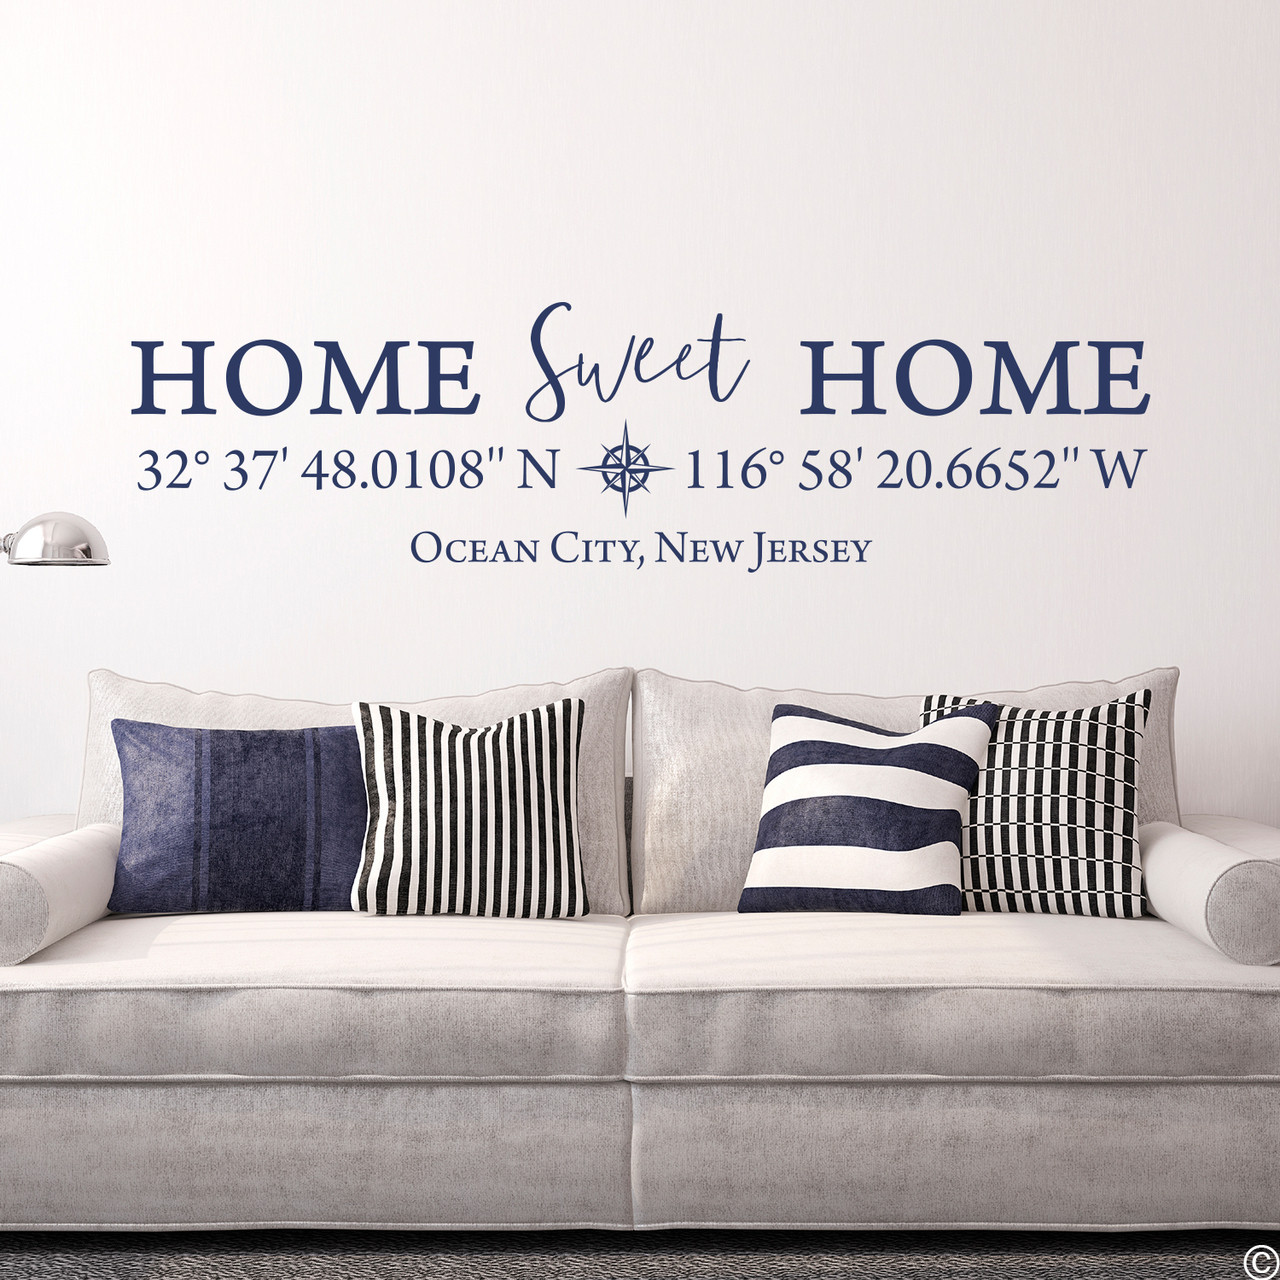 Home Sweet Home Tennessee Wall Decal State Silhouette Vinyl Art for Home Decor Living Room or Family Room Decoration